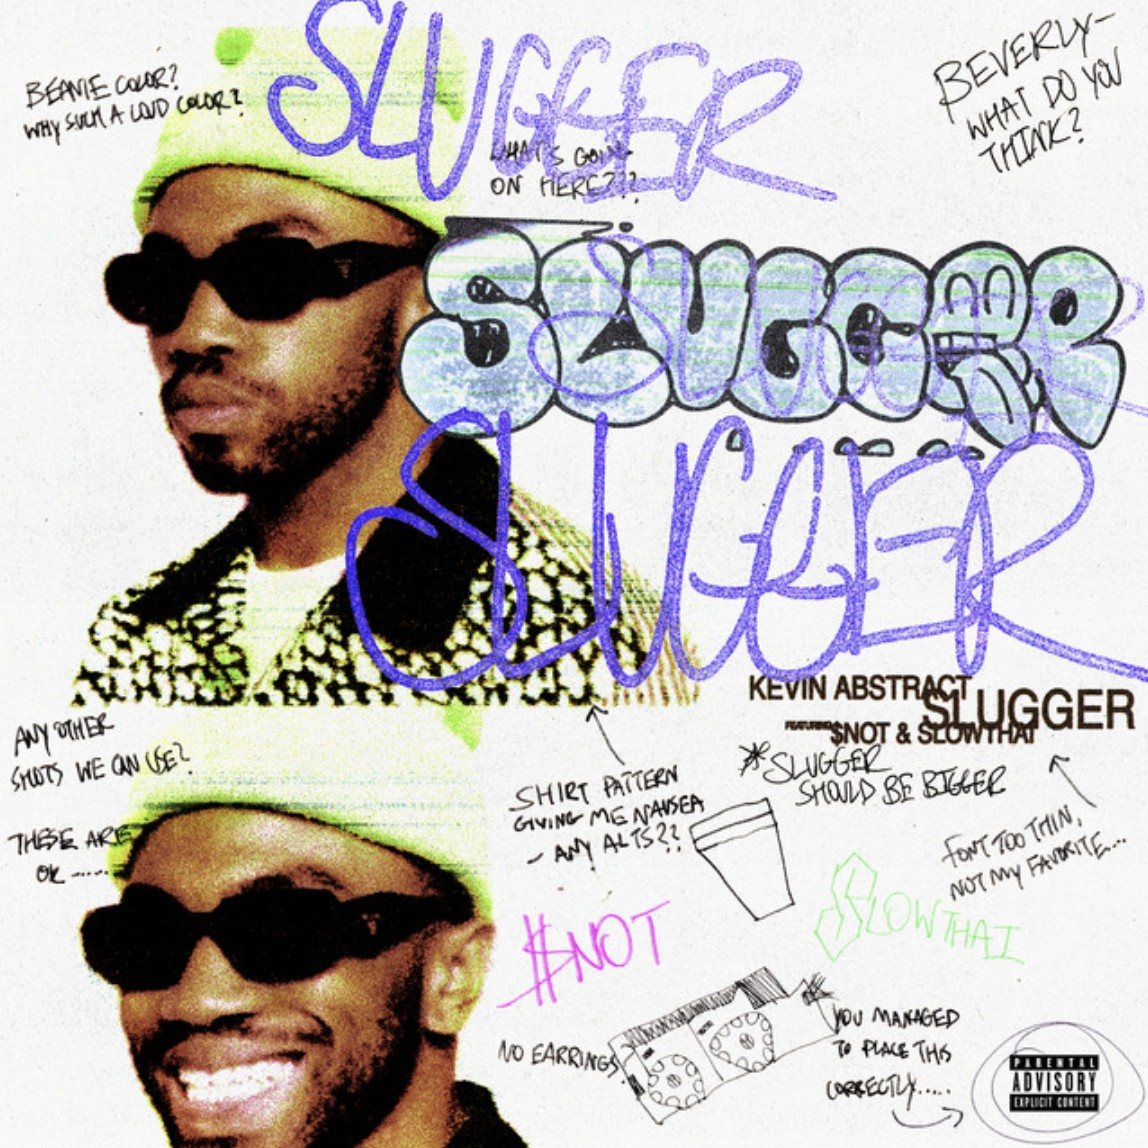 Slugger – [Kevin Abstract] ft. [$NOT] & [slowthai]